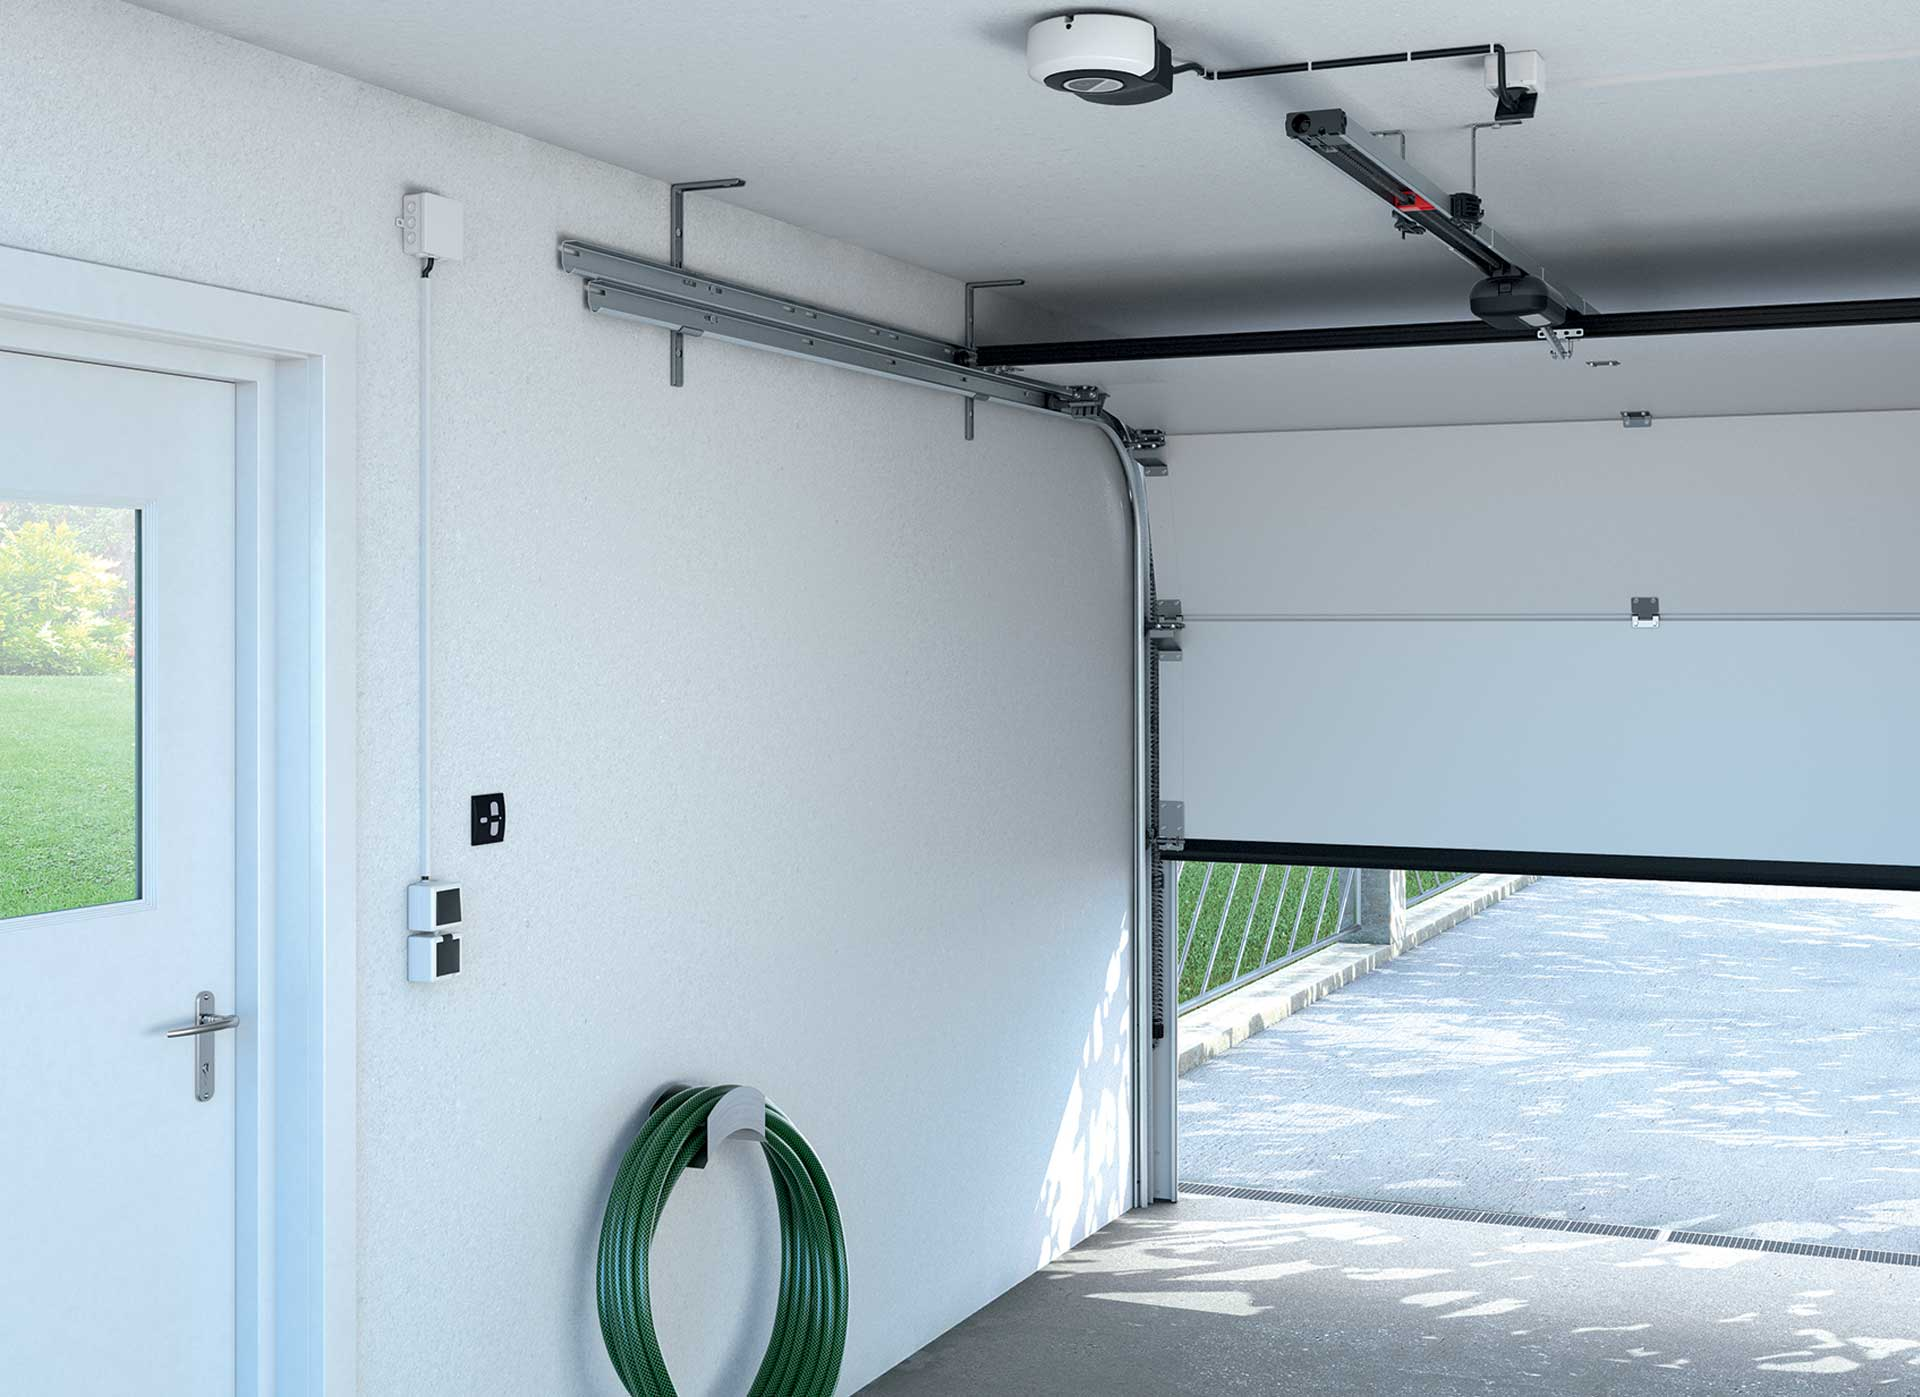 Sectional Garage Doors with the latest technology